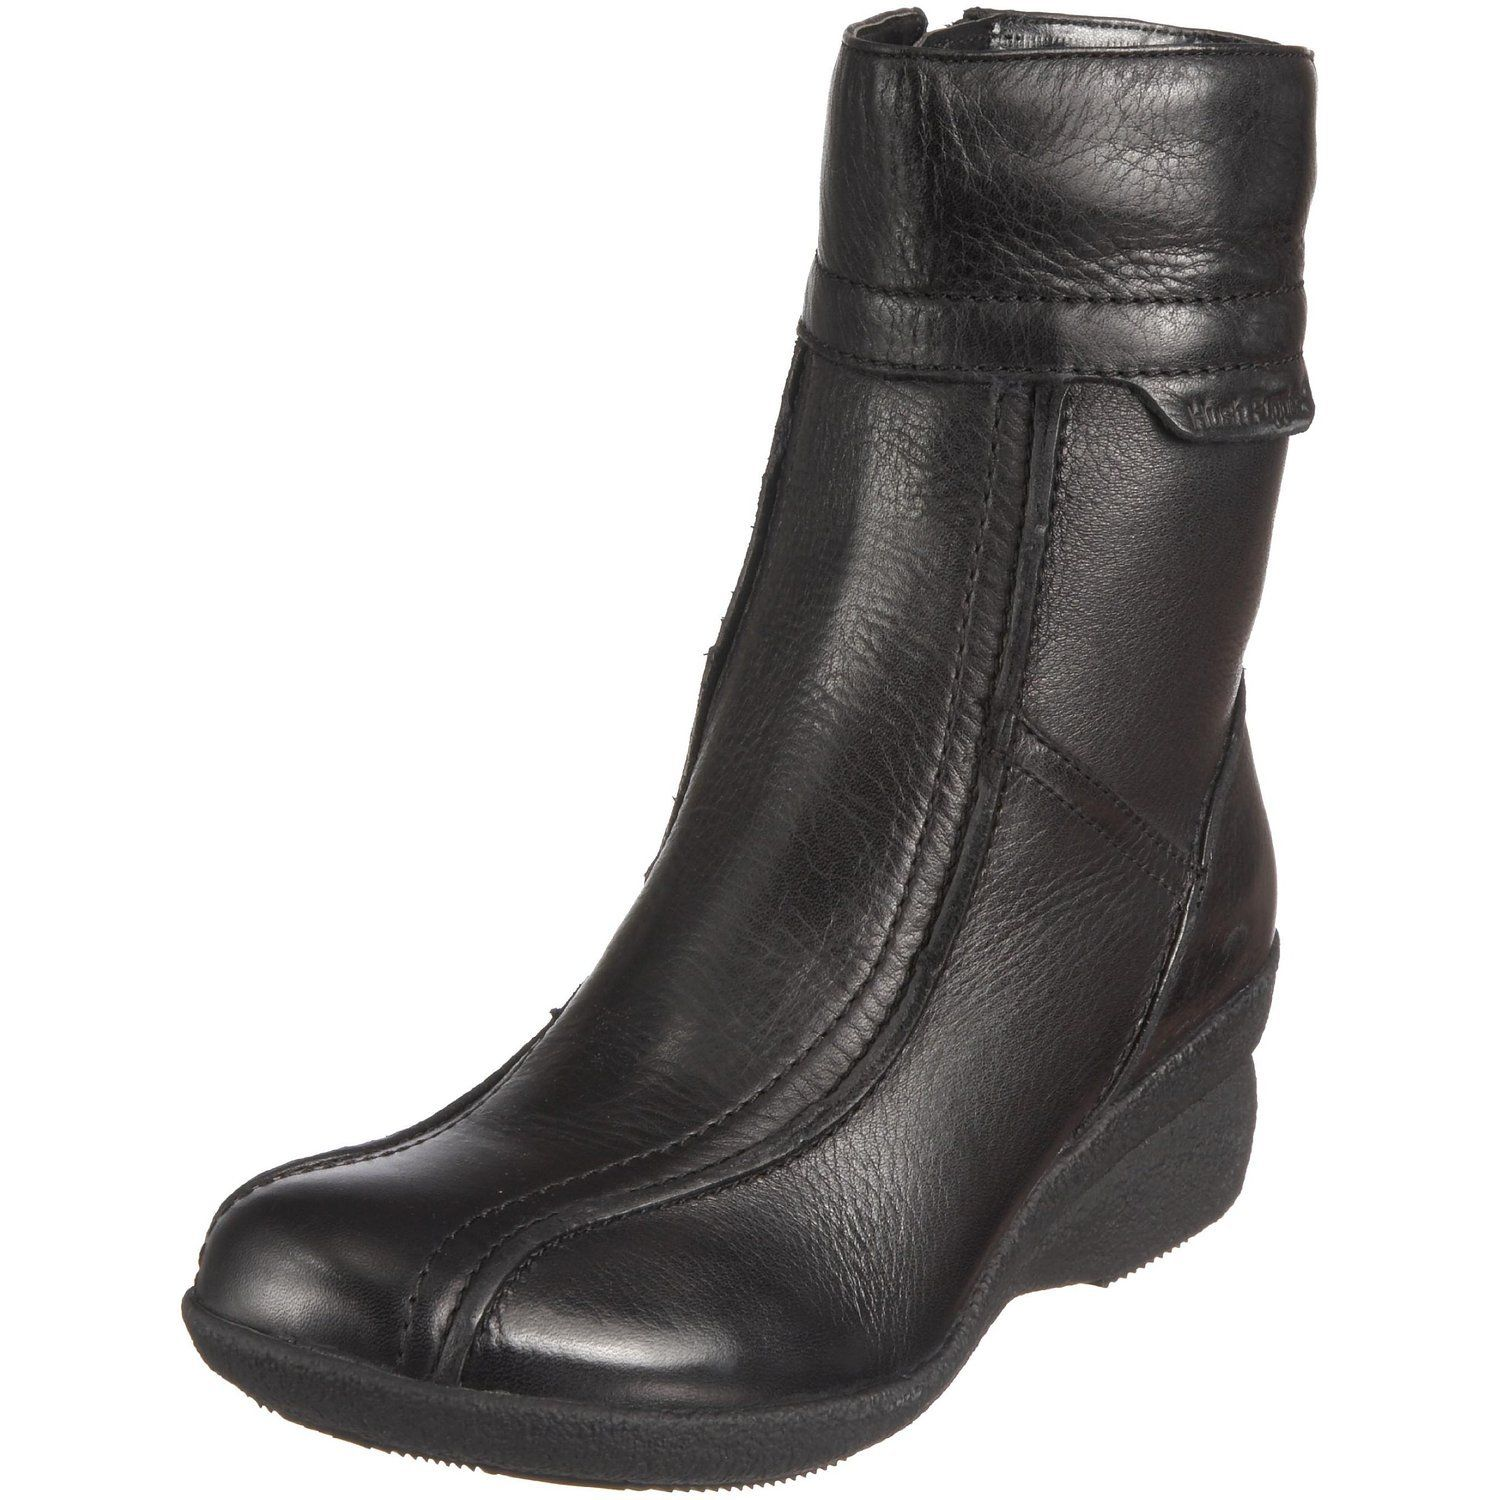 hush puppies yokiko womens black leather zip up ankle